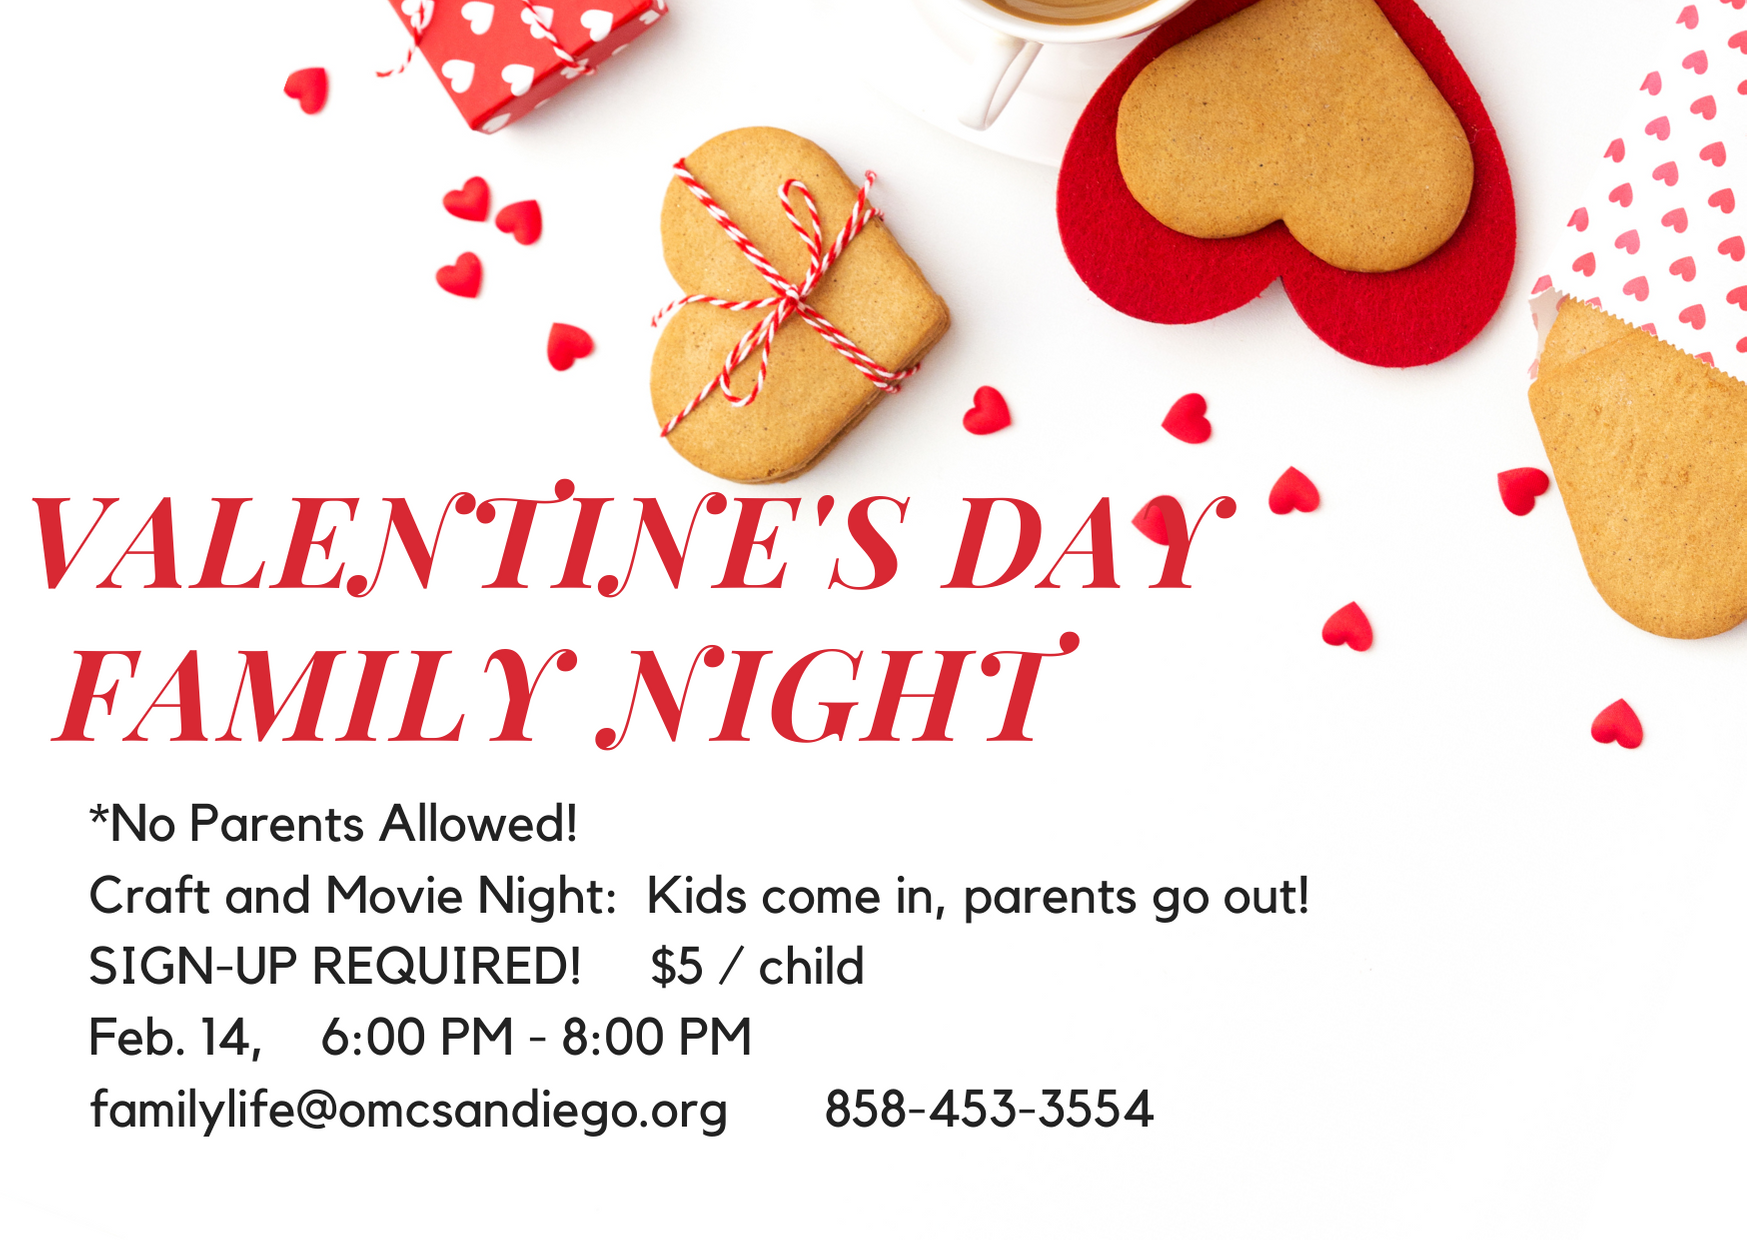 Valentine's Day FAMILY NIGHT